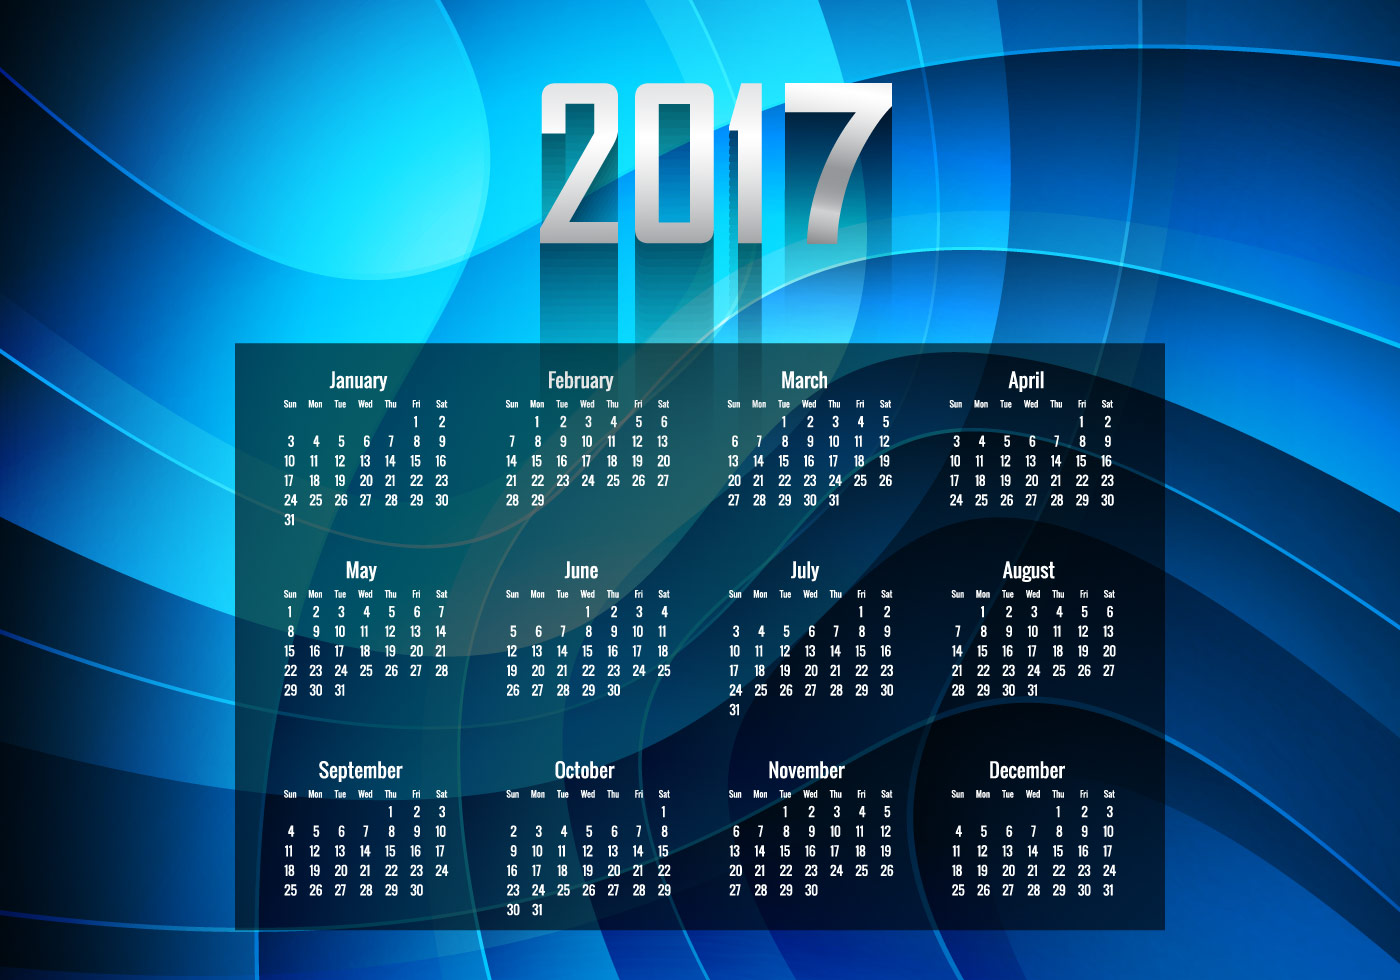 Glowing Blue Year 2017 Calendar - Download Free Vector Art, Stock ...